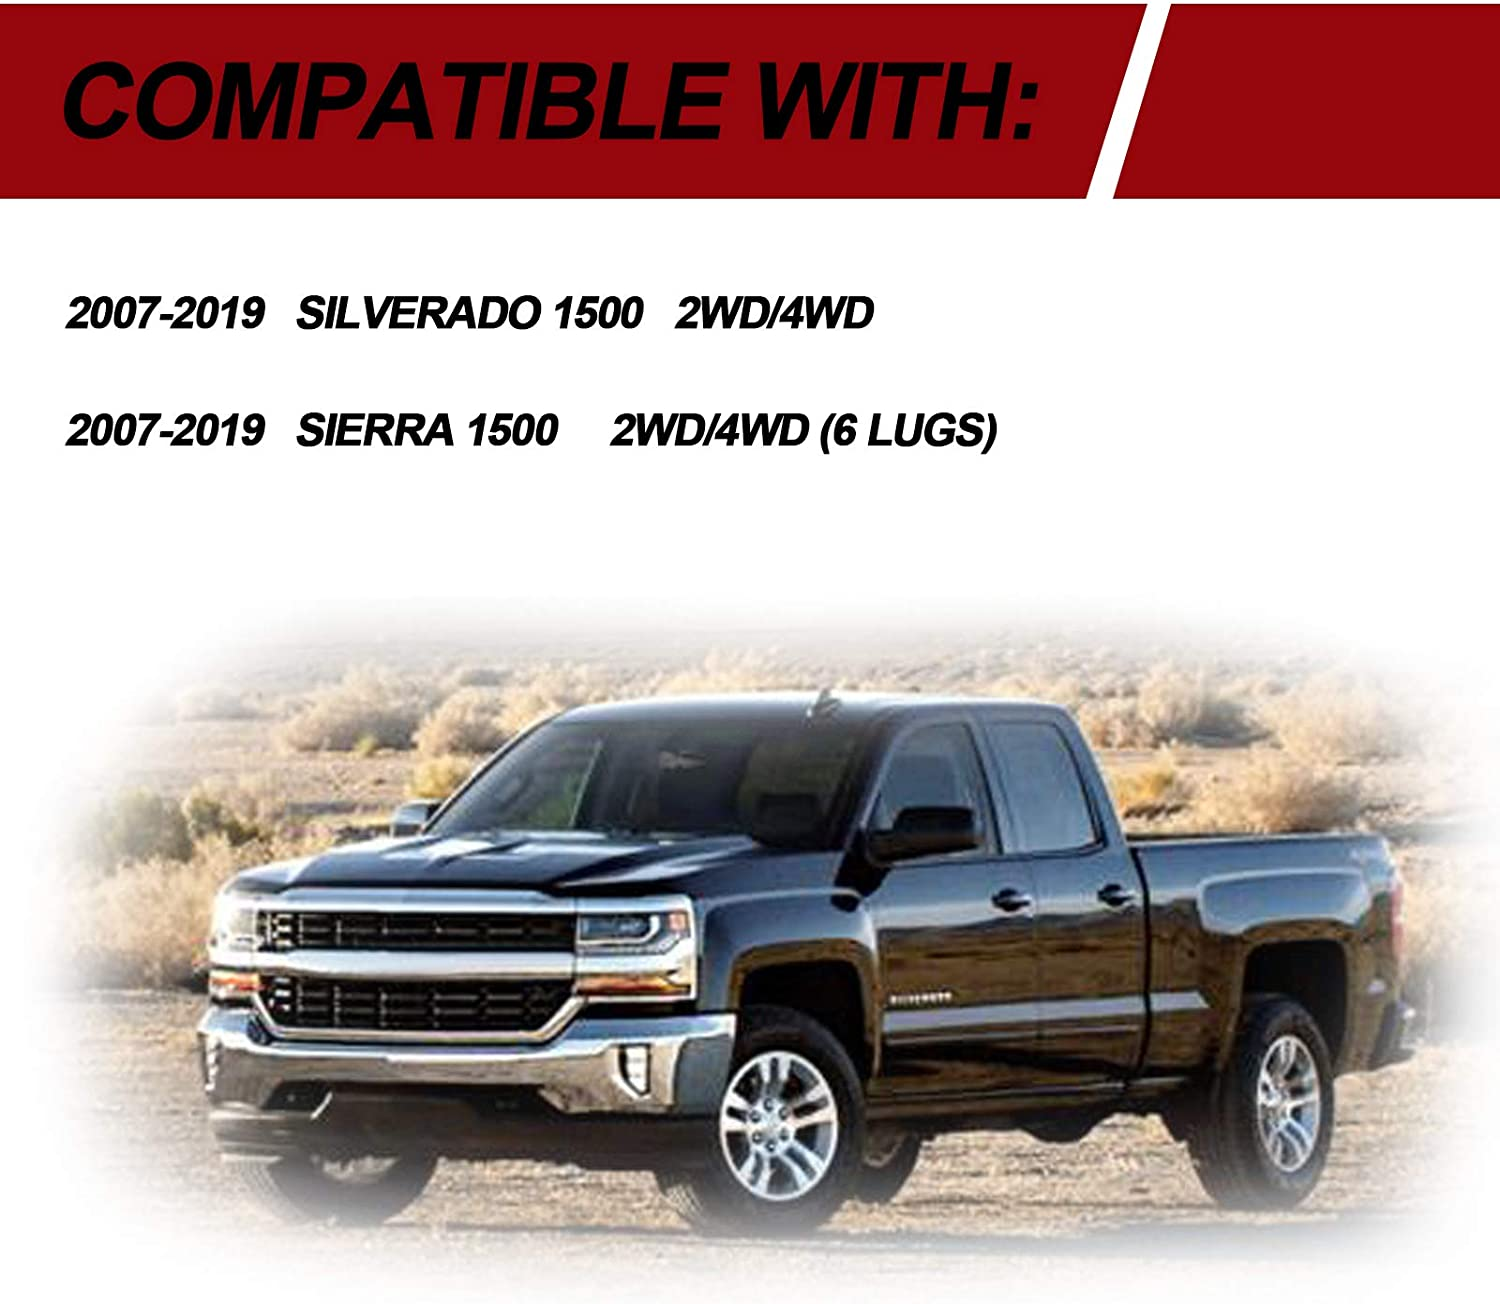 DEEN 3 Leveling Lift Kit for 2007-2019 Silverado 1500//2007-2019 Sierra 1500 ,3 inch Forged Front Strut Spacers Suspension Lift Leveling Kits 2WD//4WD